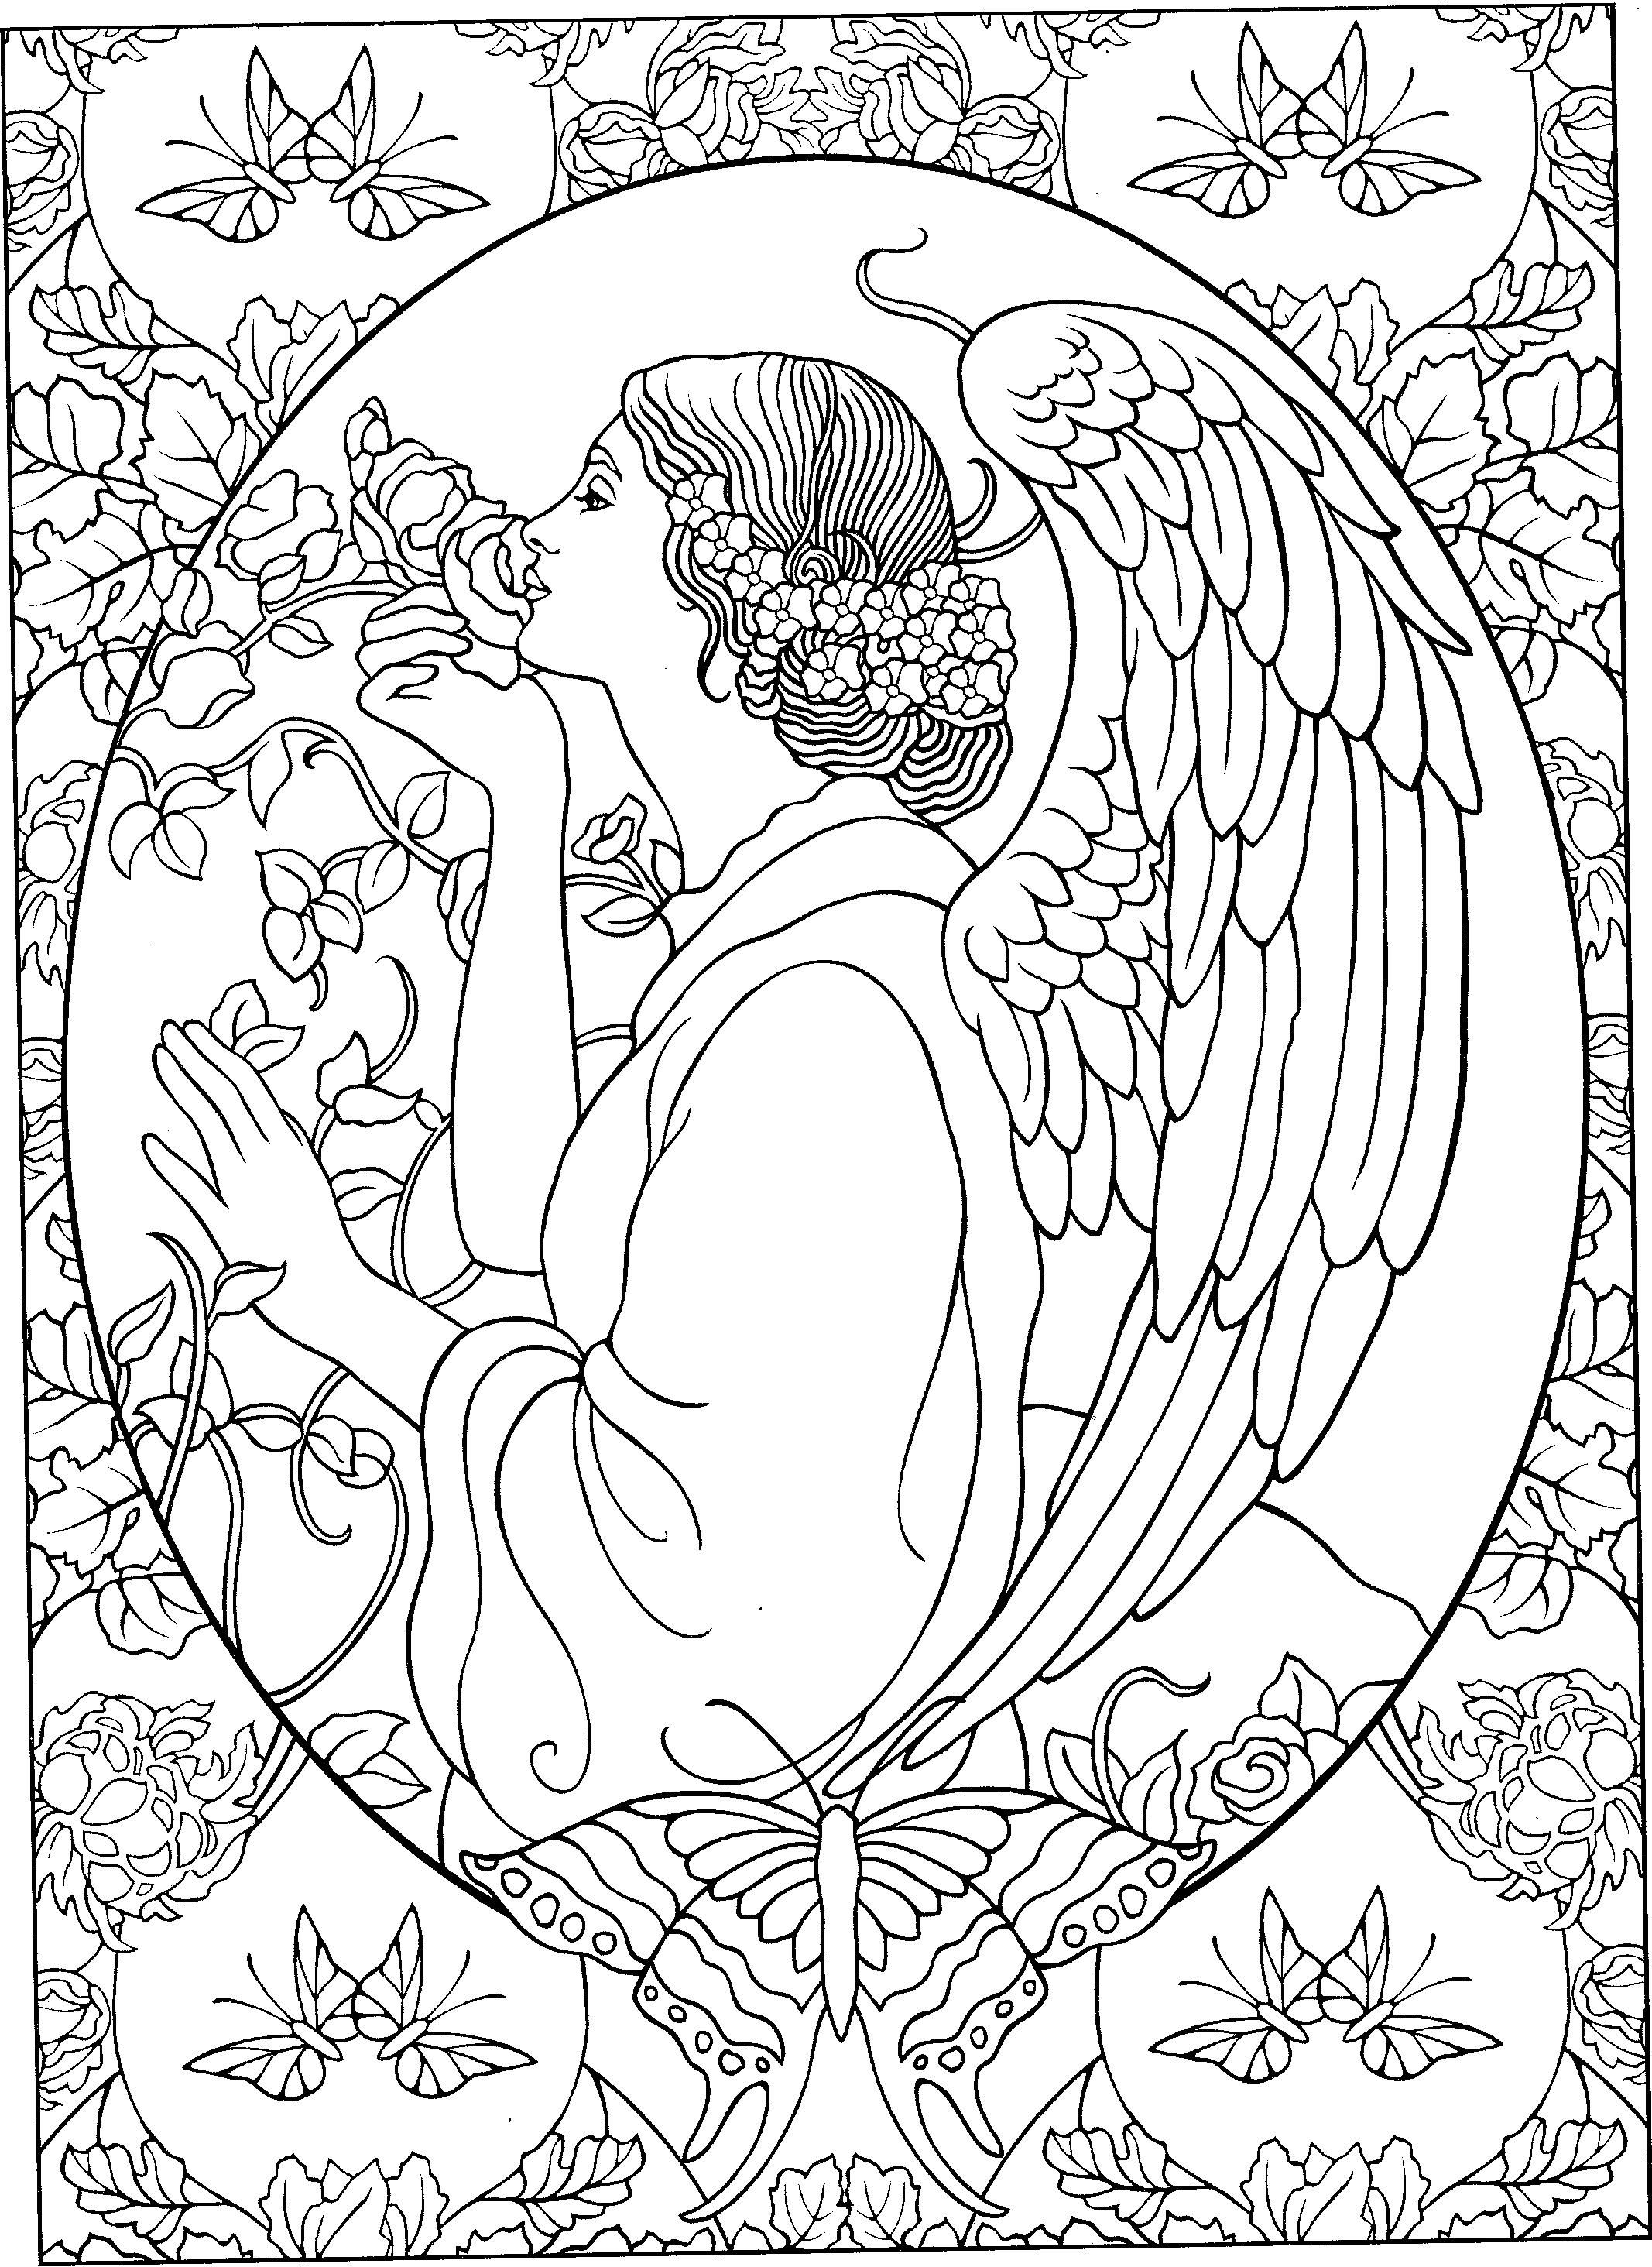 Pin By Sarakhoshraftar On Art I Like Angel Coloring Pages Fairy Coloring Pages Christian Coloring